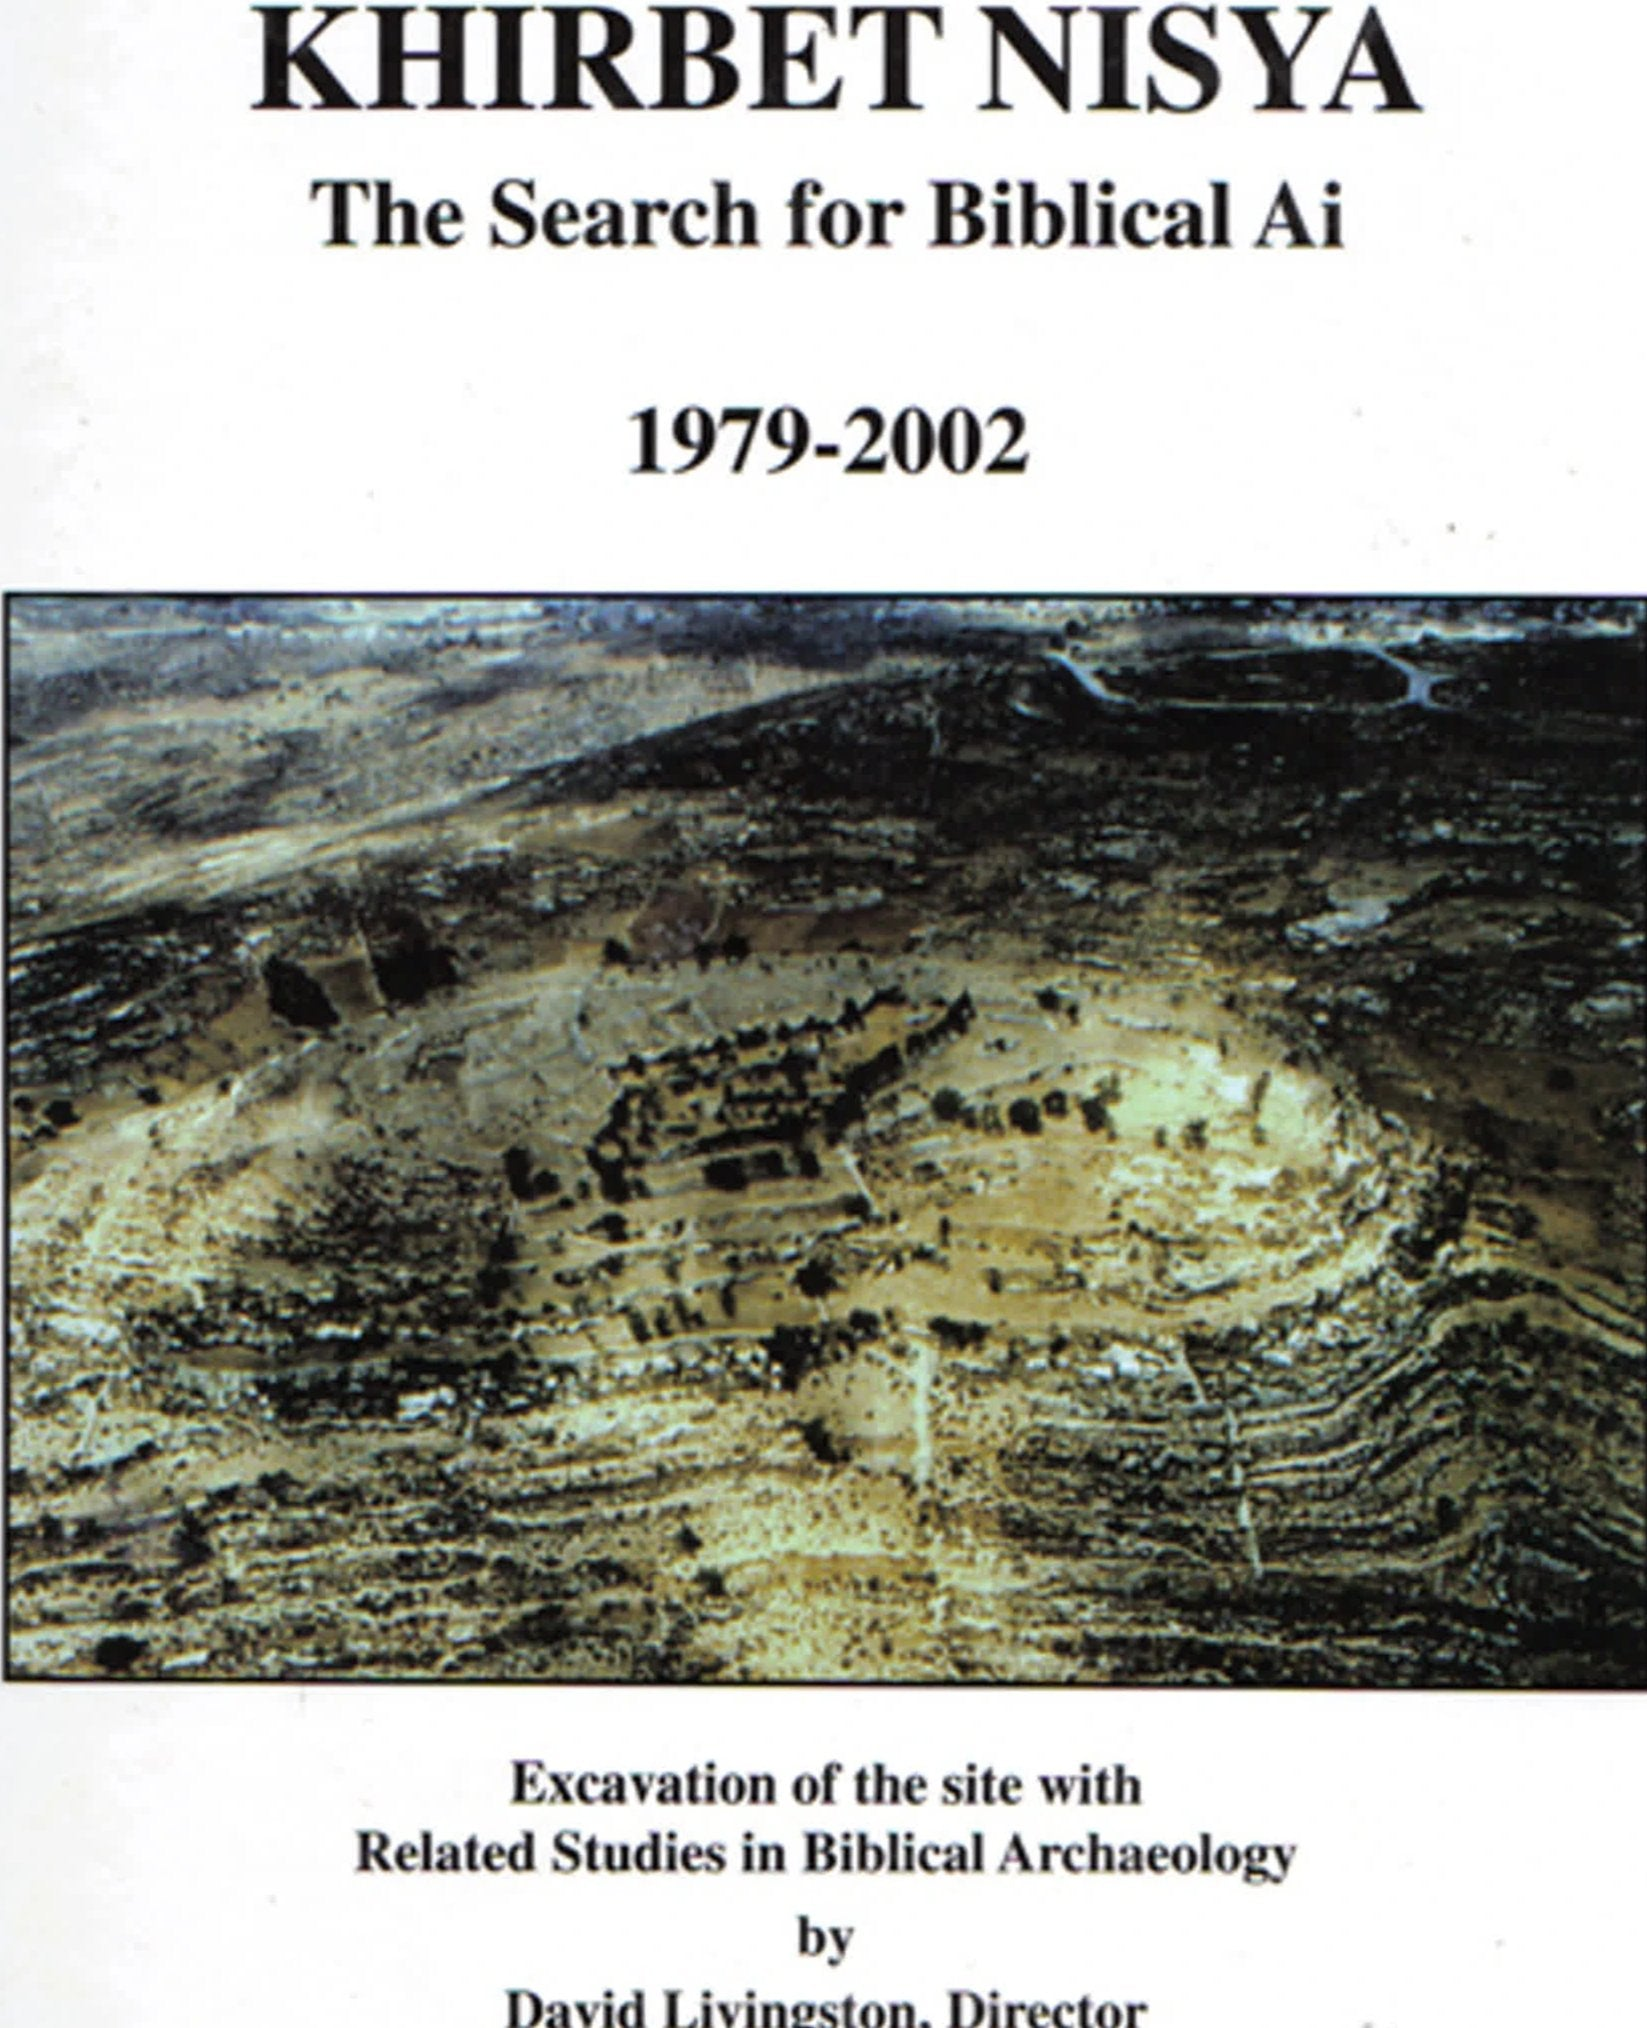 Khirbet Nisya - The Search for Biblical Ai, 1979-2002 PDF Files ONLY